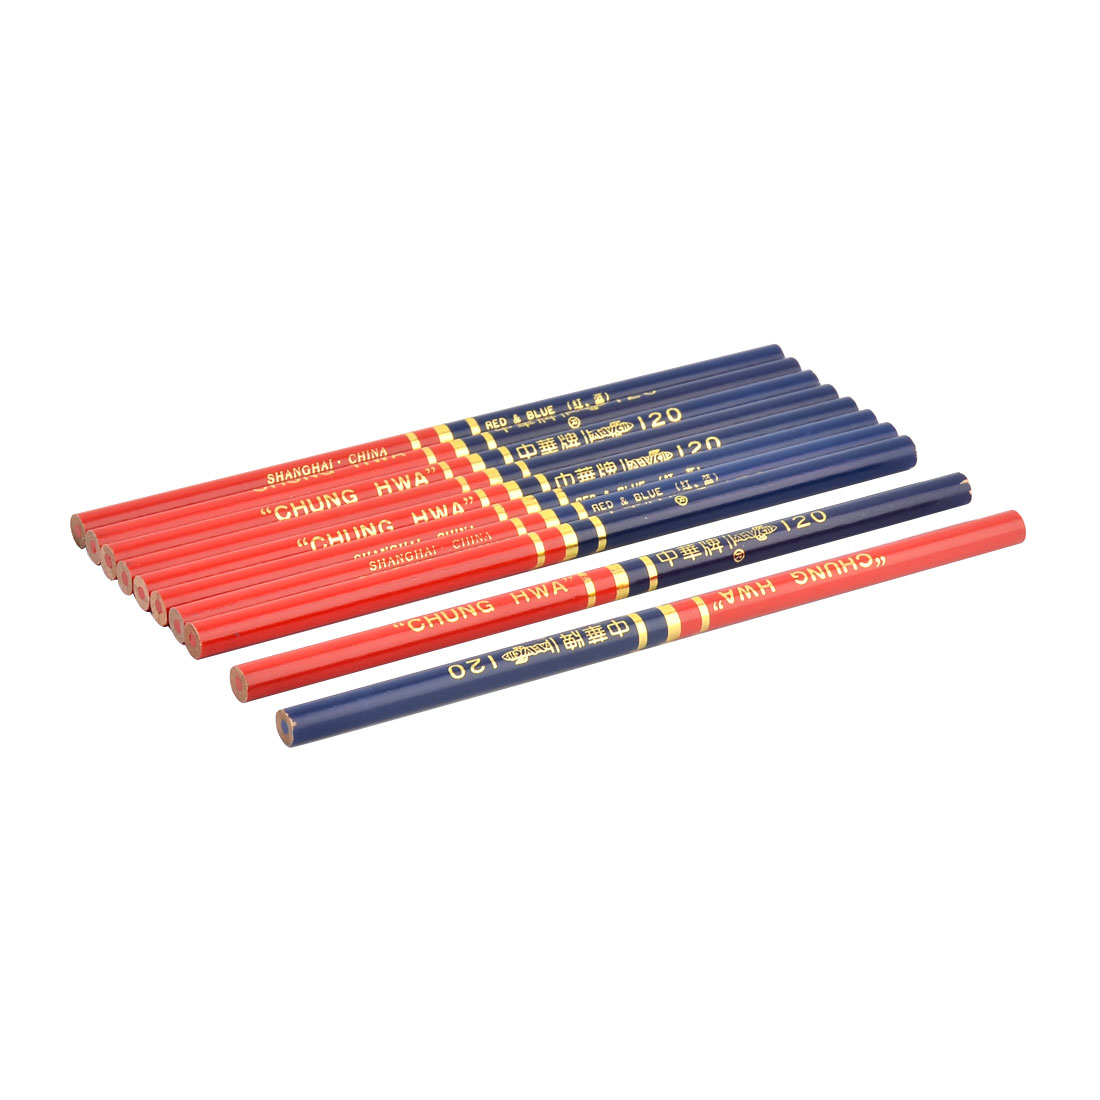 Office School Carpenter Drawing Writing Pencil Dual Head Red Blue 10pcs